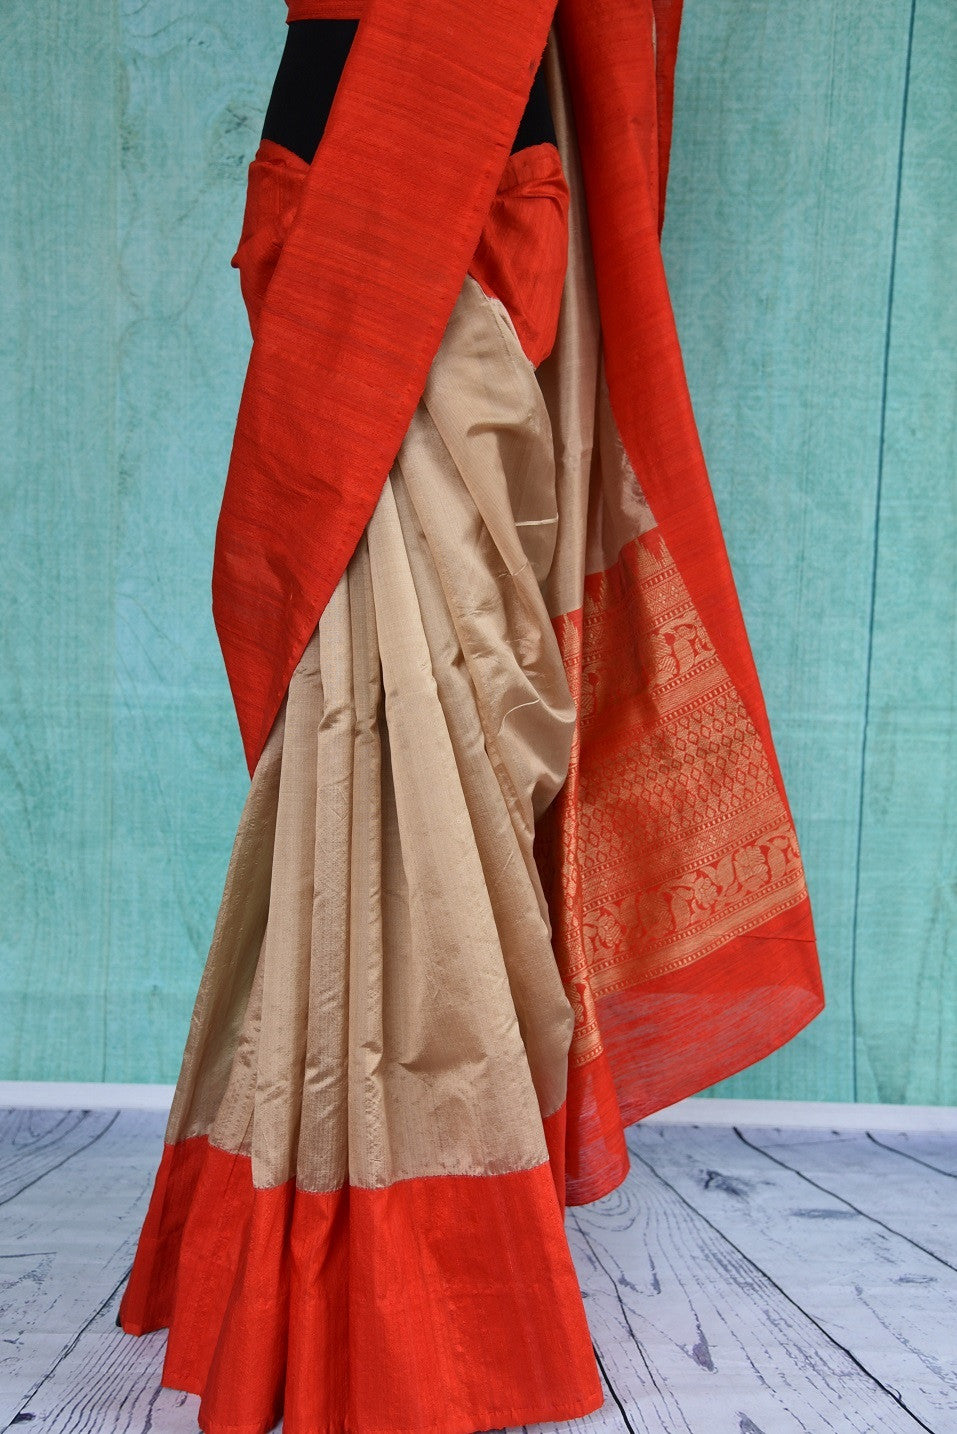 90B657 Soft golden &  bright red Banarasi silk saree with gicha border available at our Indian wear store in USA. The striking, yet simple saree is available online at Pure Elegance and is ideal ethnic wear for wedding functions and ethnic occasions.